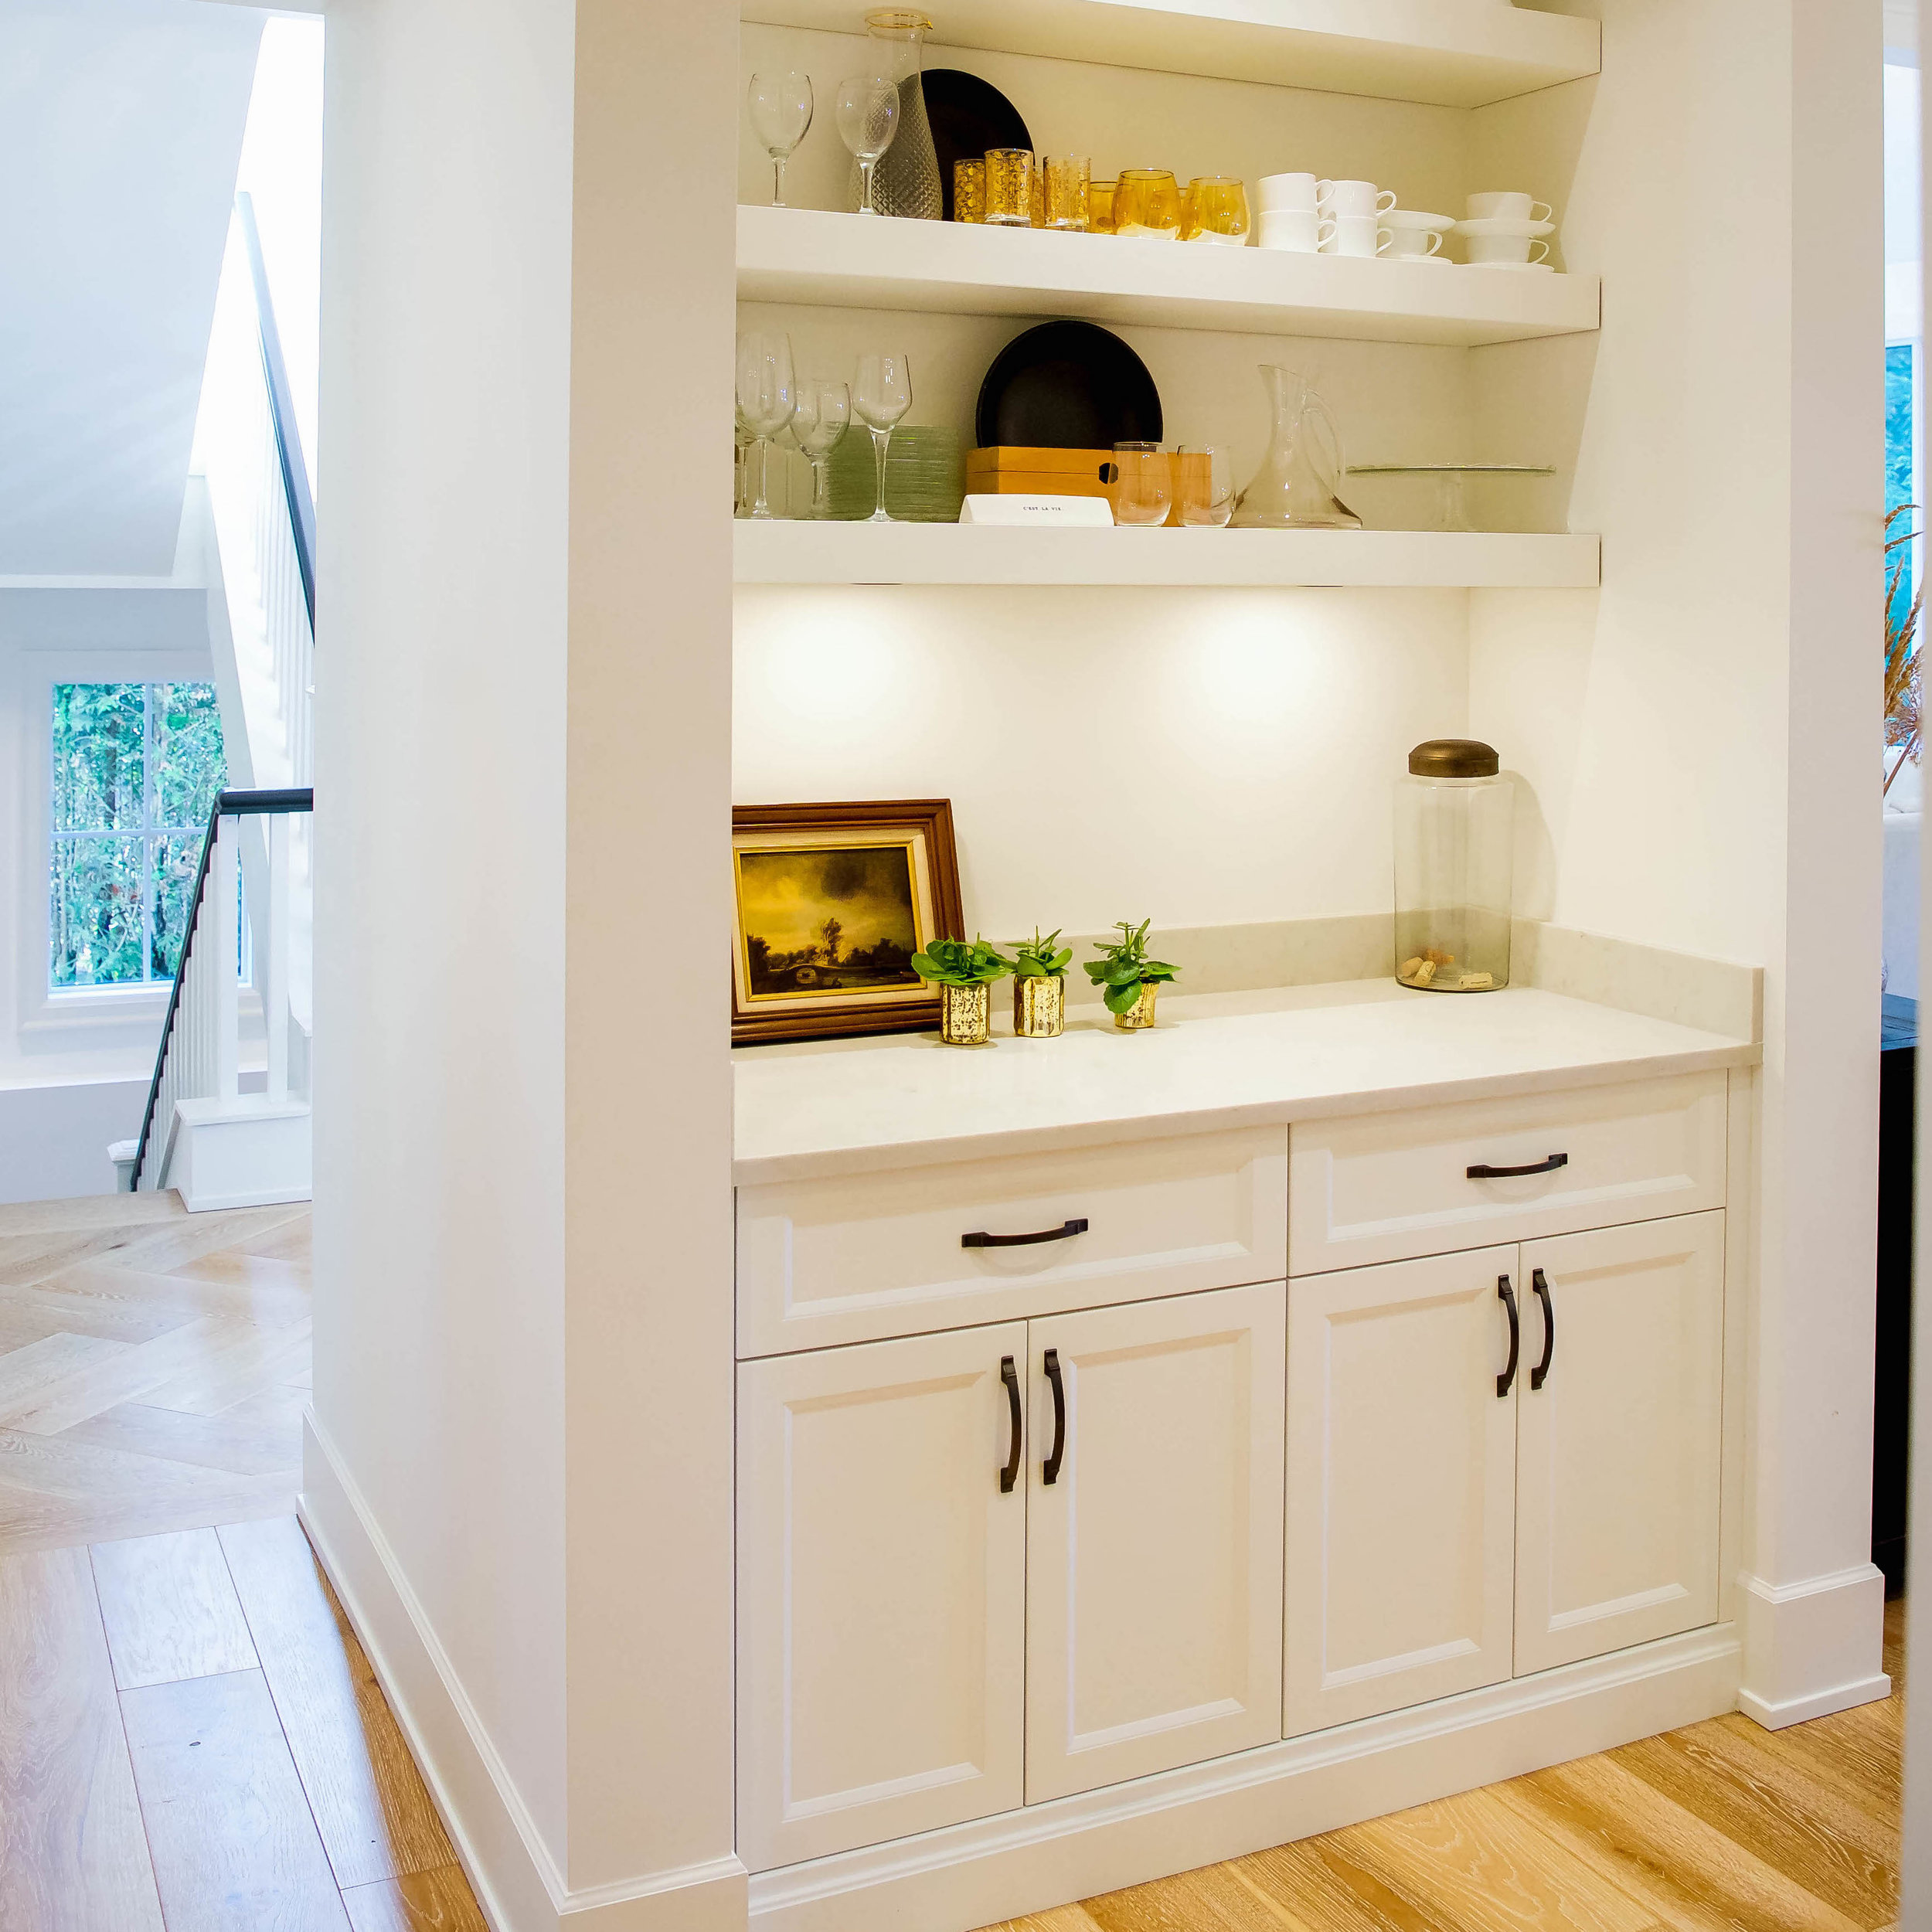 CUSTOM MILLWORK - Custom cabinets can provide elegance throughout your home or office.